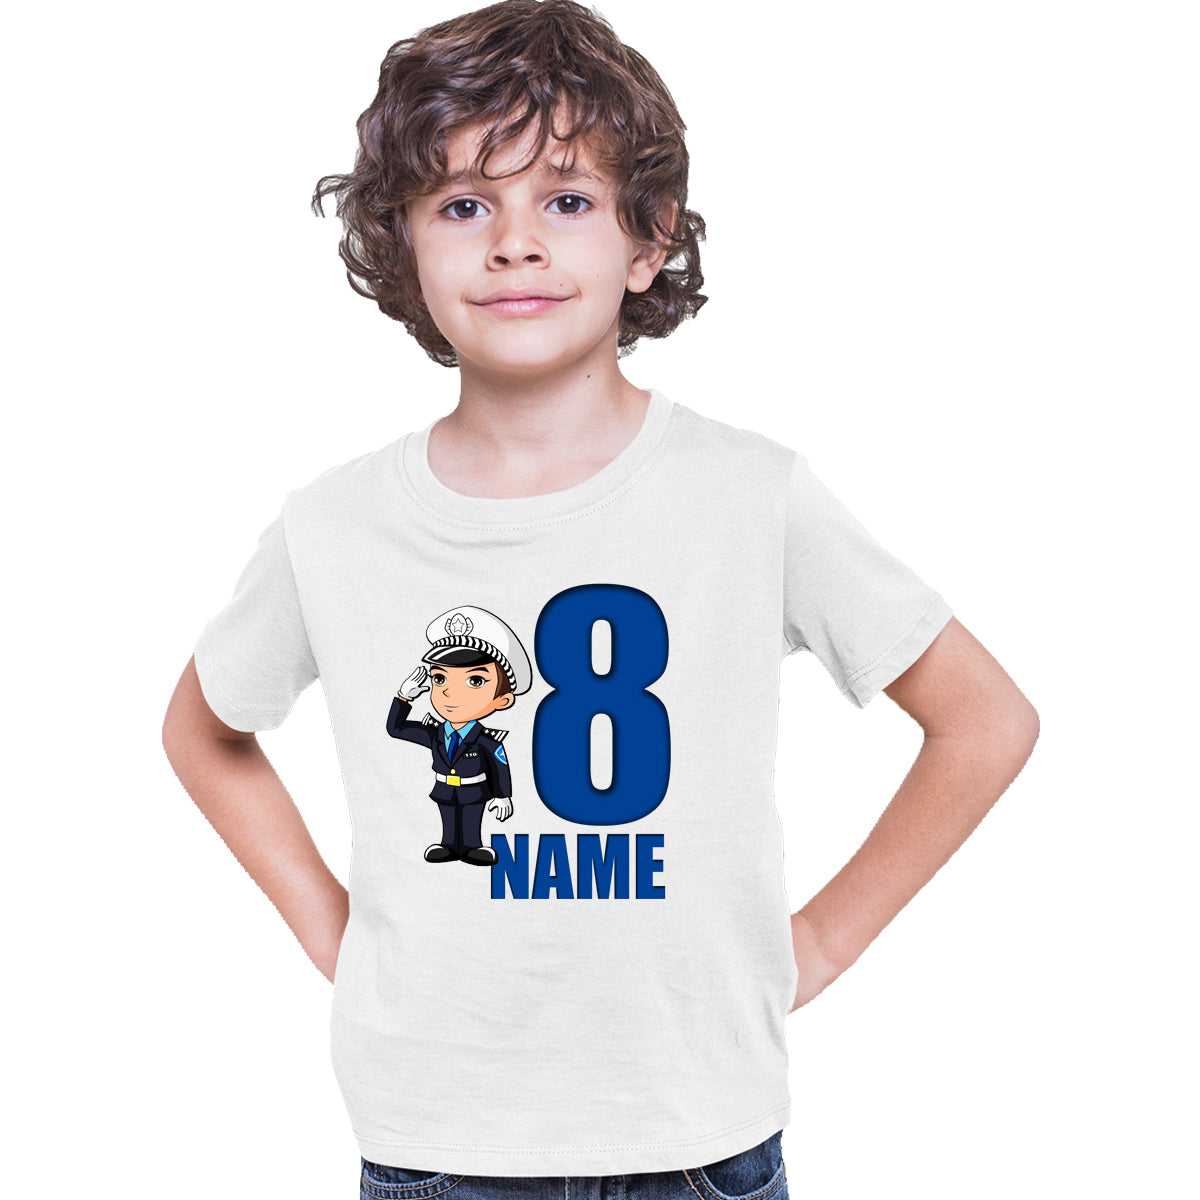 Sprinklecart Personalized Name and Age Printed Police Man 8th Birthday Poly-Cotton T Shirt for Kids (White)